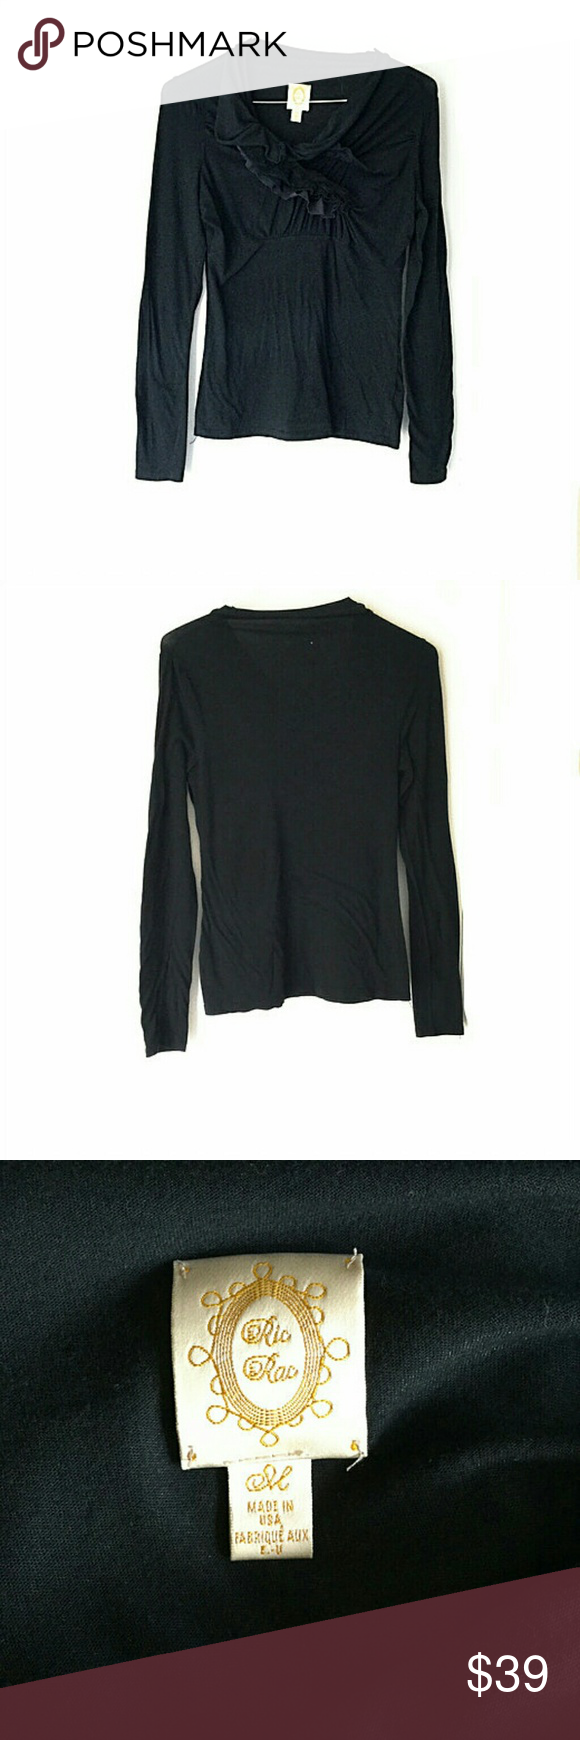 """Anthropologie """"Ric Tac"""" Ruffle Cowl Neck Top In good condition.  No signs of wear.  Size medium.  Approximate measurements:  Length 25.5"""".  Bust across 19"""".  Smoke and pet free home.  Ships within one business day. Anthropologie Tops Blouses"""